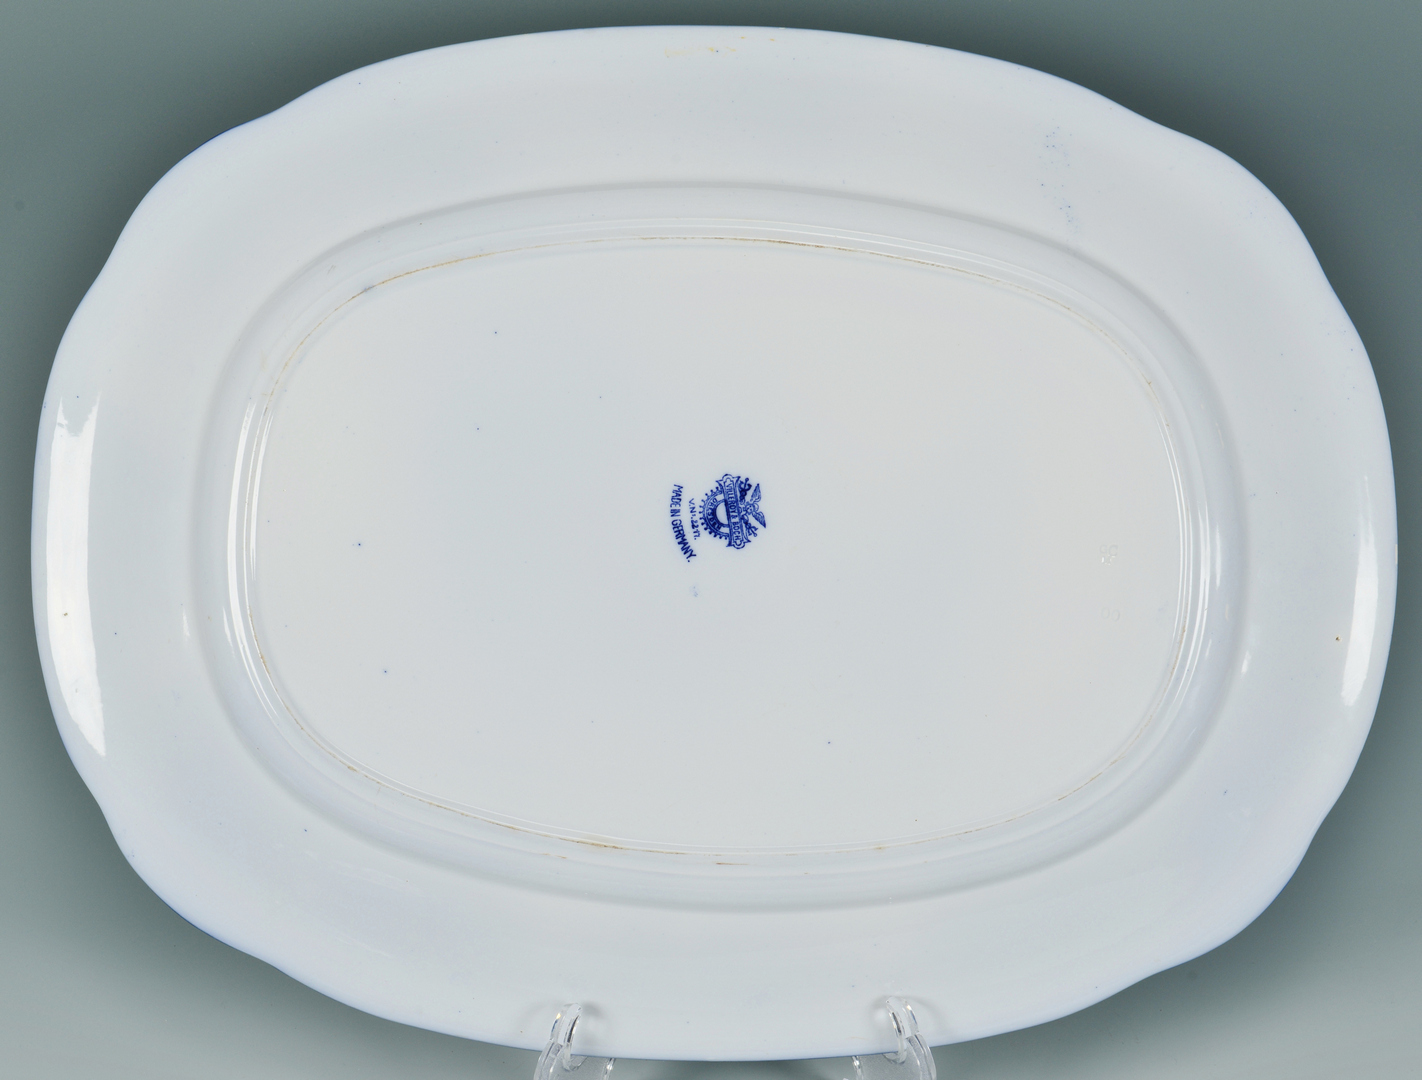 Lot 3088163: Turkey Platter with 12 plates, Flow Blue